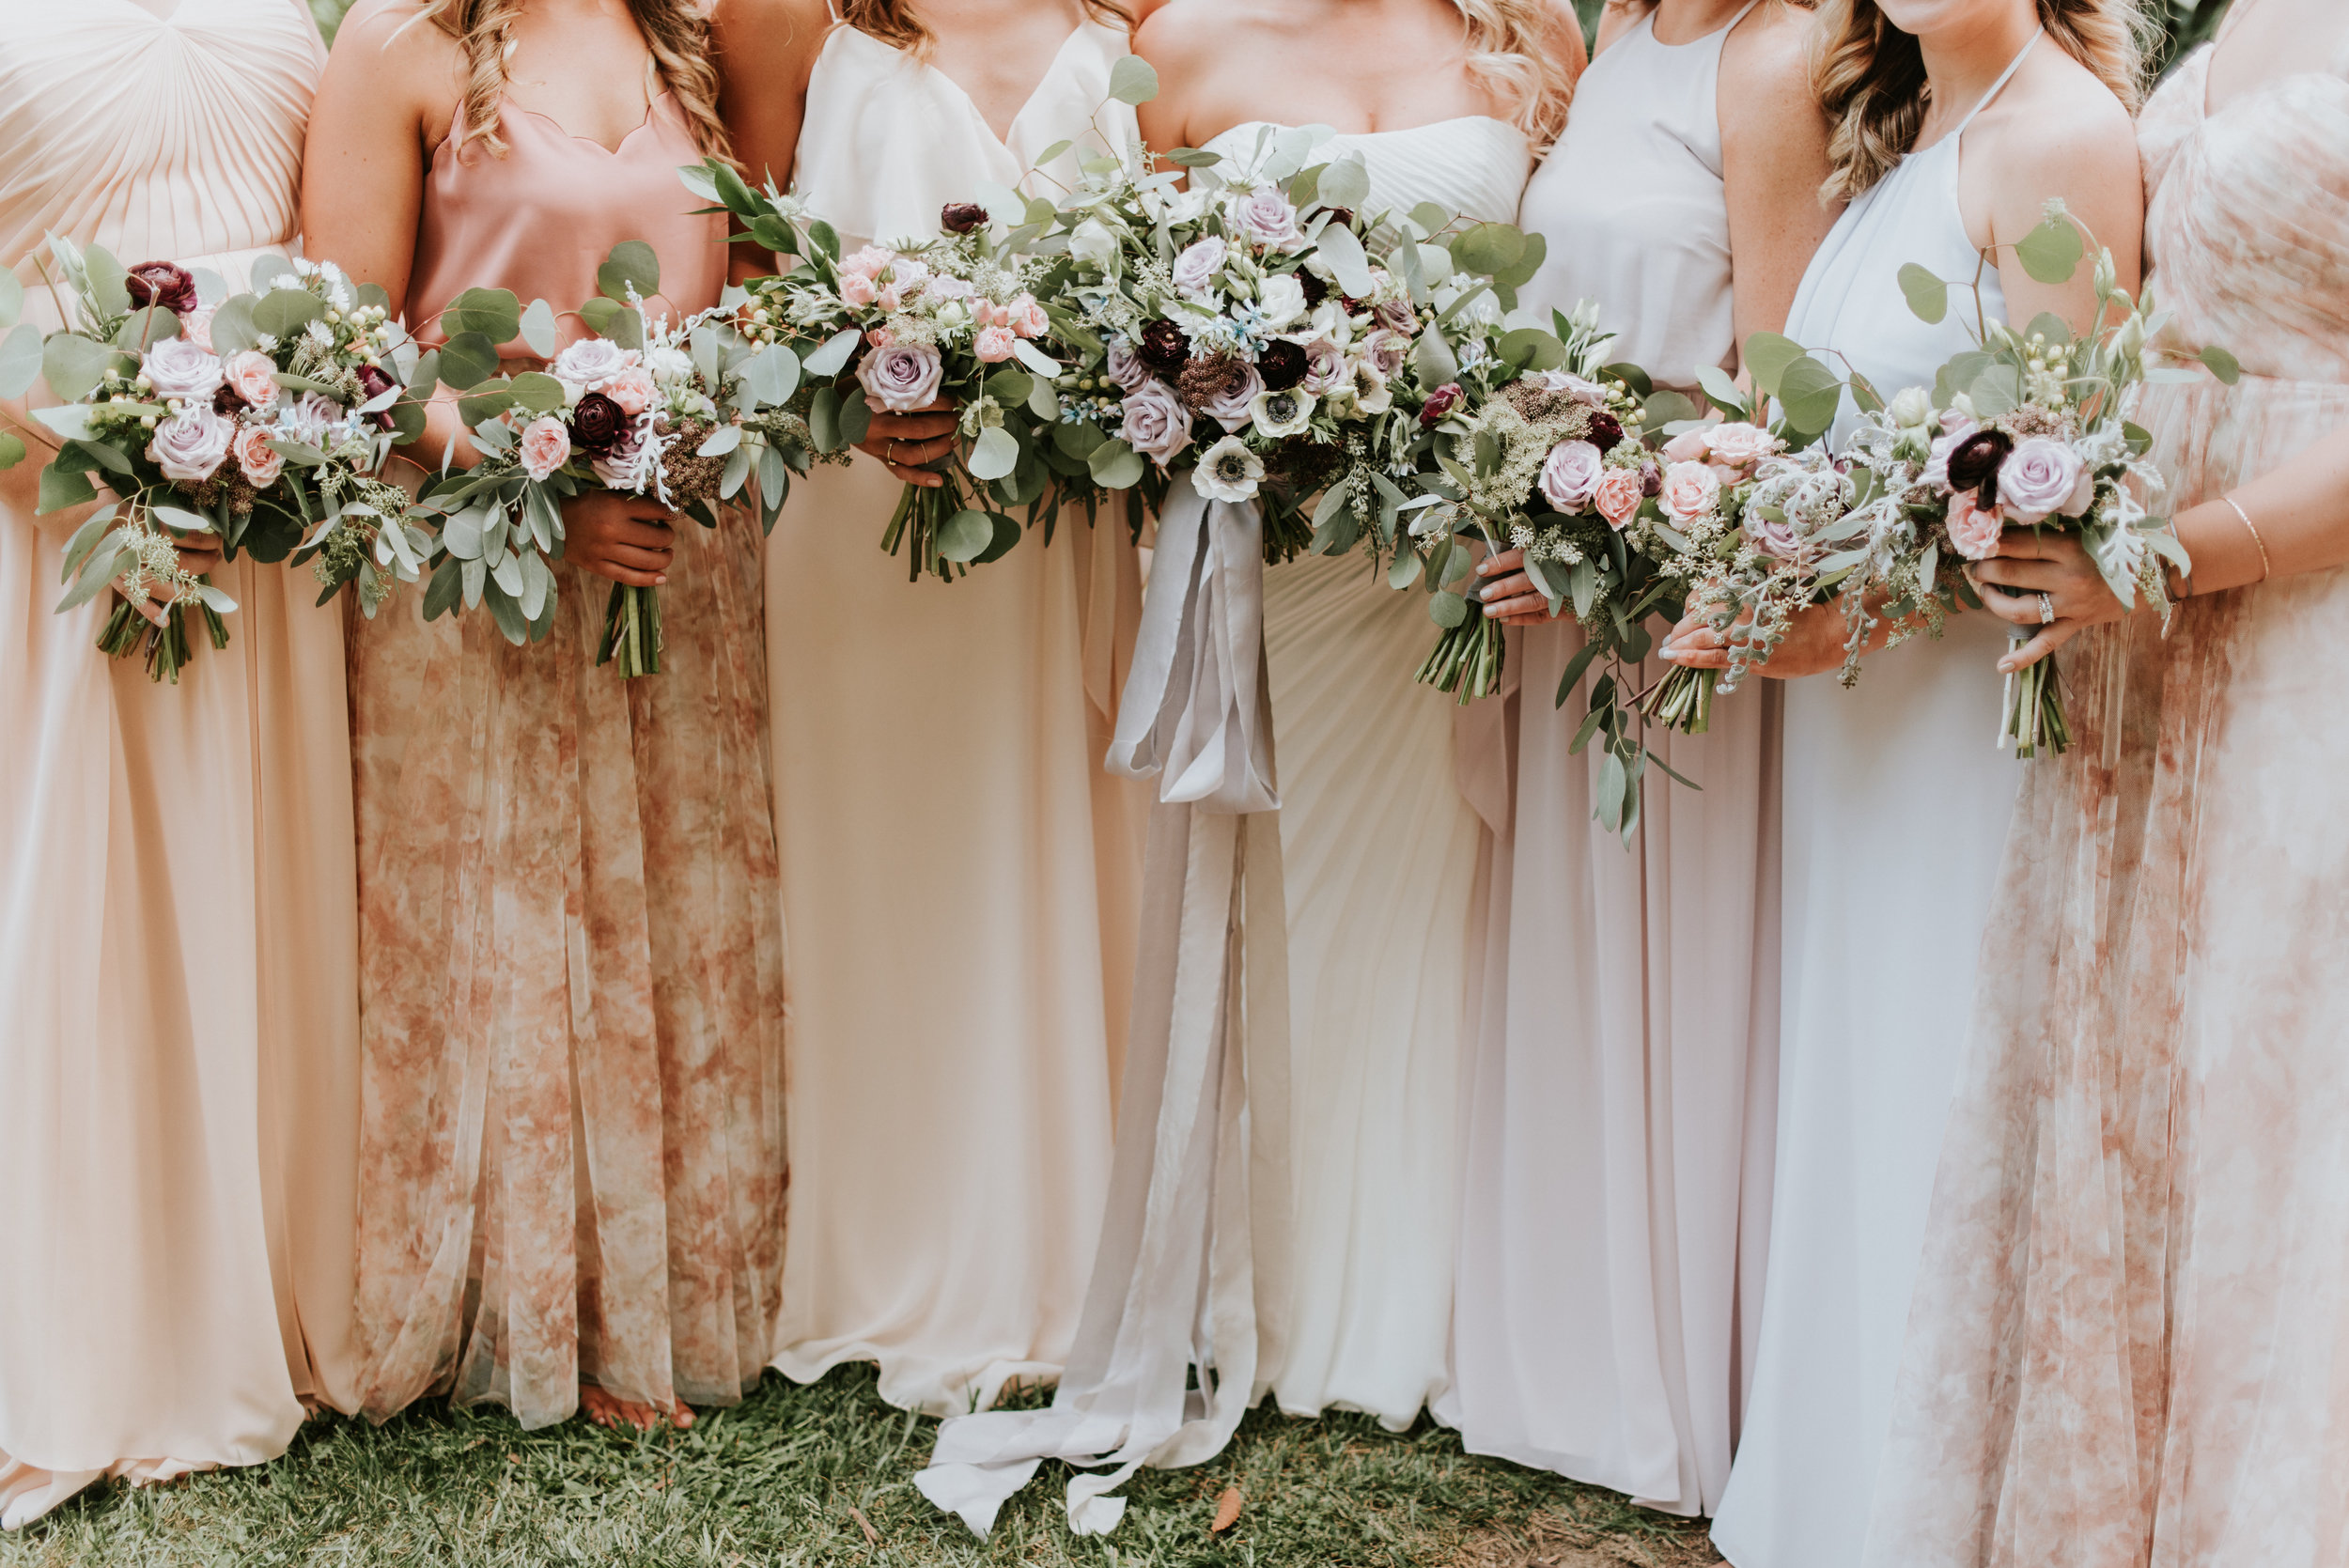 Rustic Oyster Themed Eastern Shore Maryland Outdoor Wedding by East Made Event Company Wedding Planner and Bekah Kay Creative396.jpg